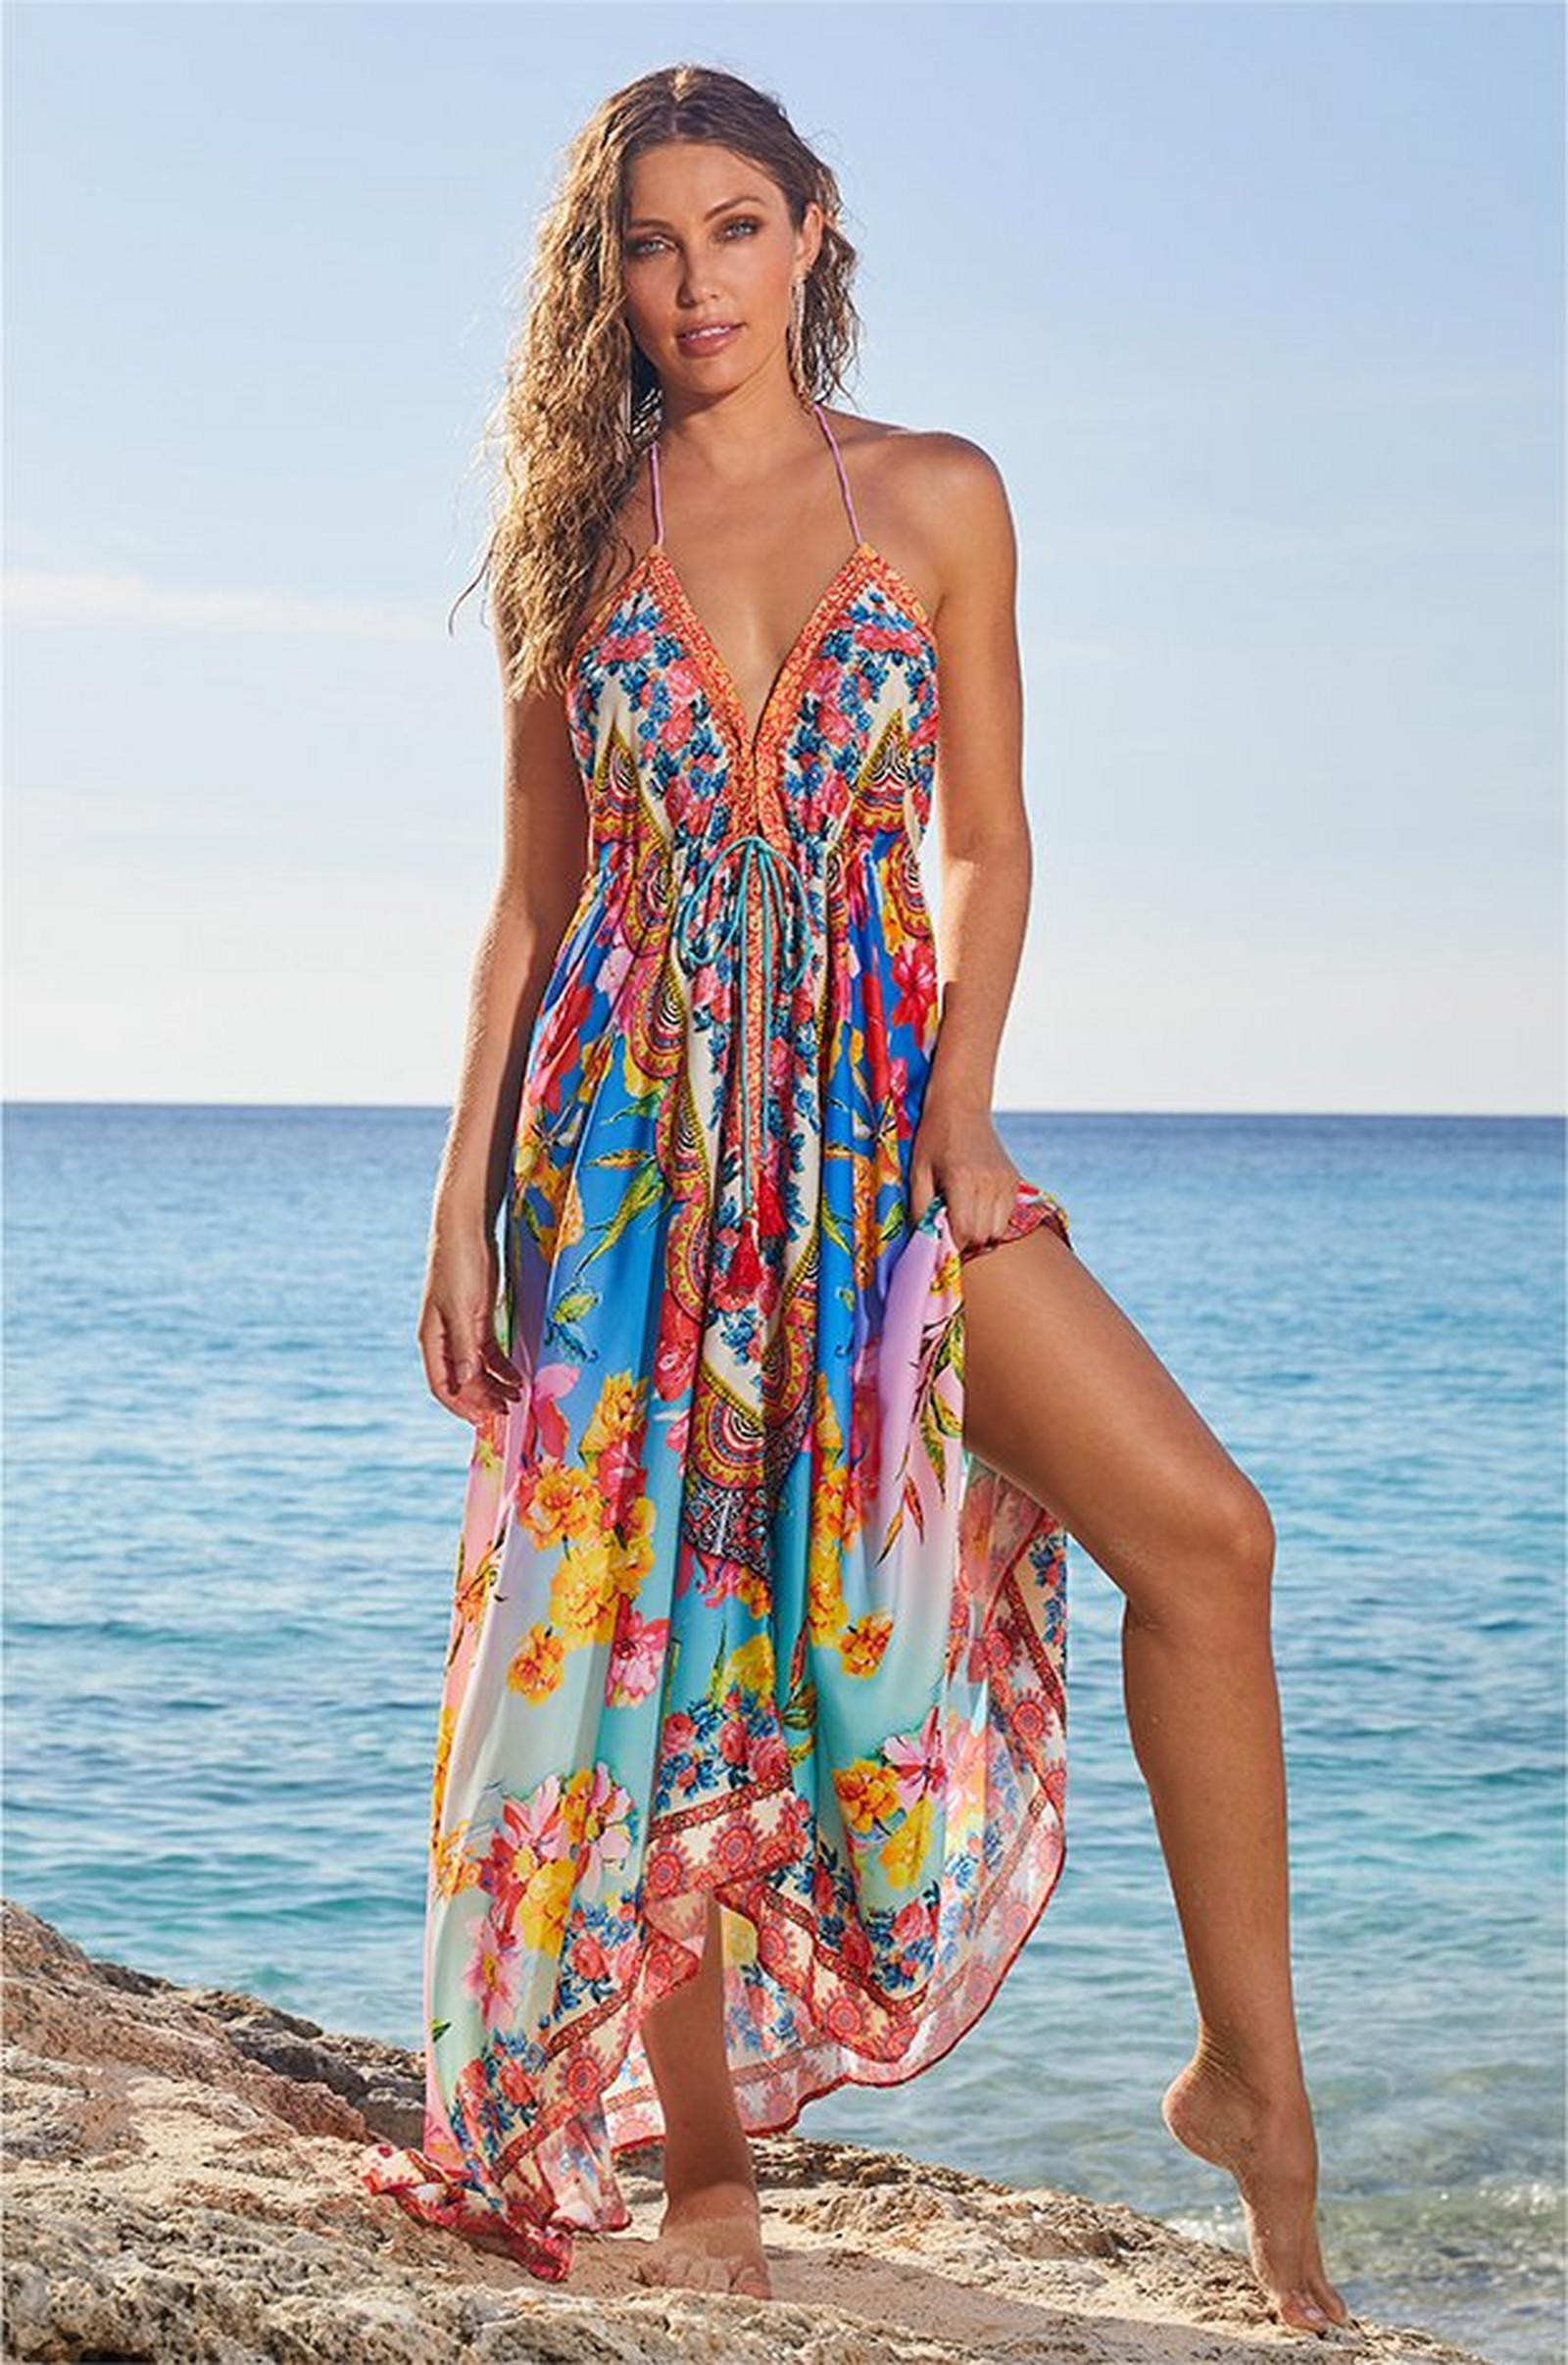 model standing on a rock wearing a multicolored floral maxi dress.